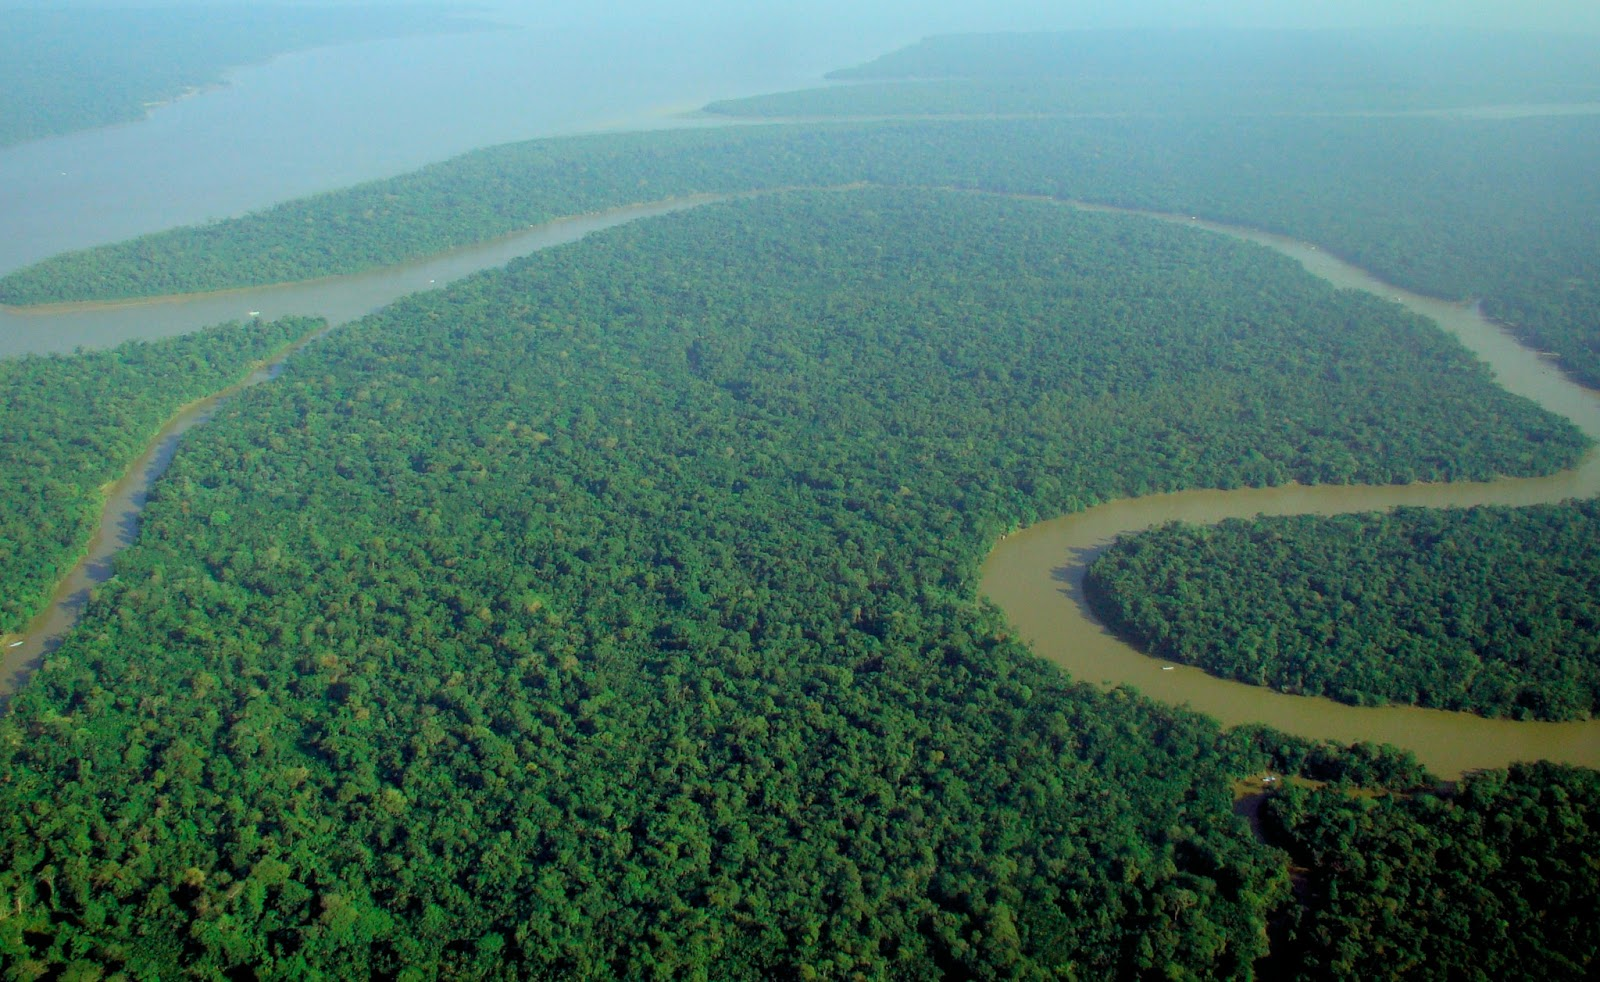 a report on the tropical rainforest Tropical rainforests are rainforests that occur in areas of tropical rainforest climate in which there is no dry season – all months have an average precipitation of at least 60 mm – and may also be referred to as lowland equatorial evergreen rainforest.